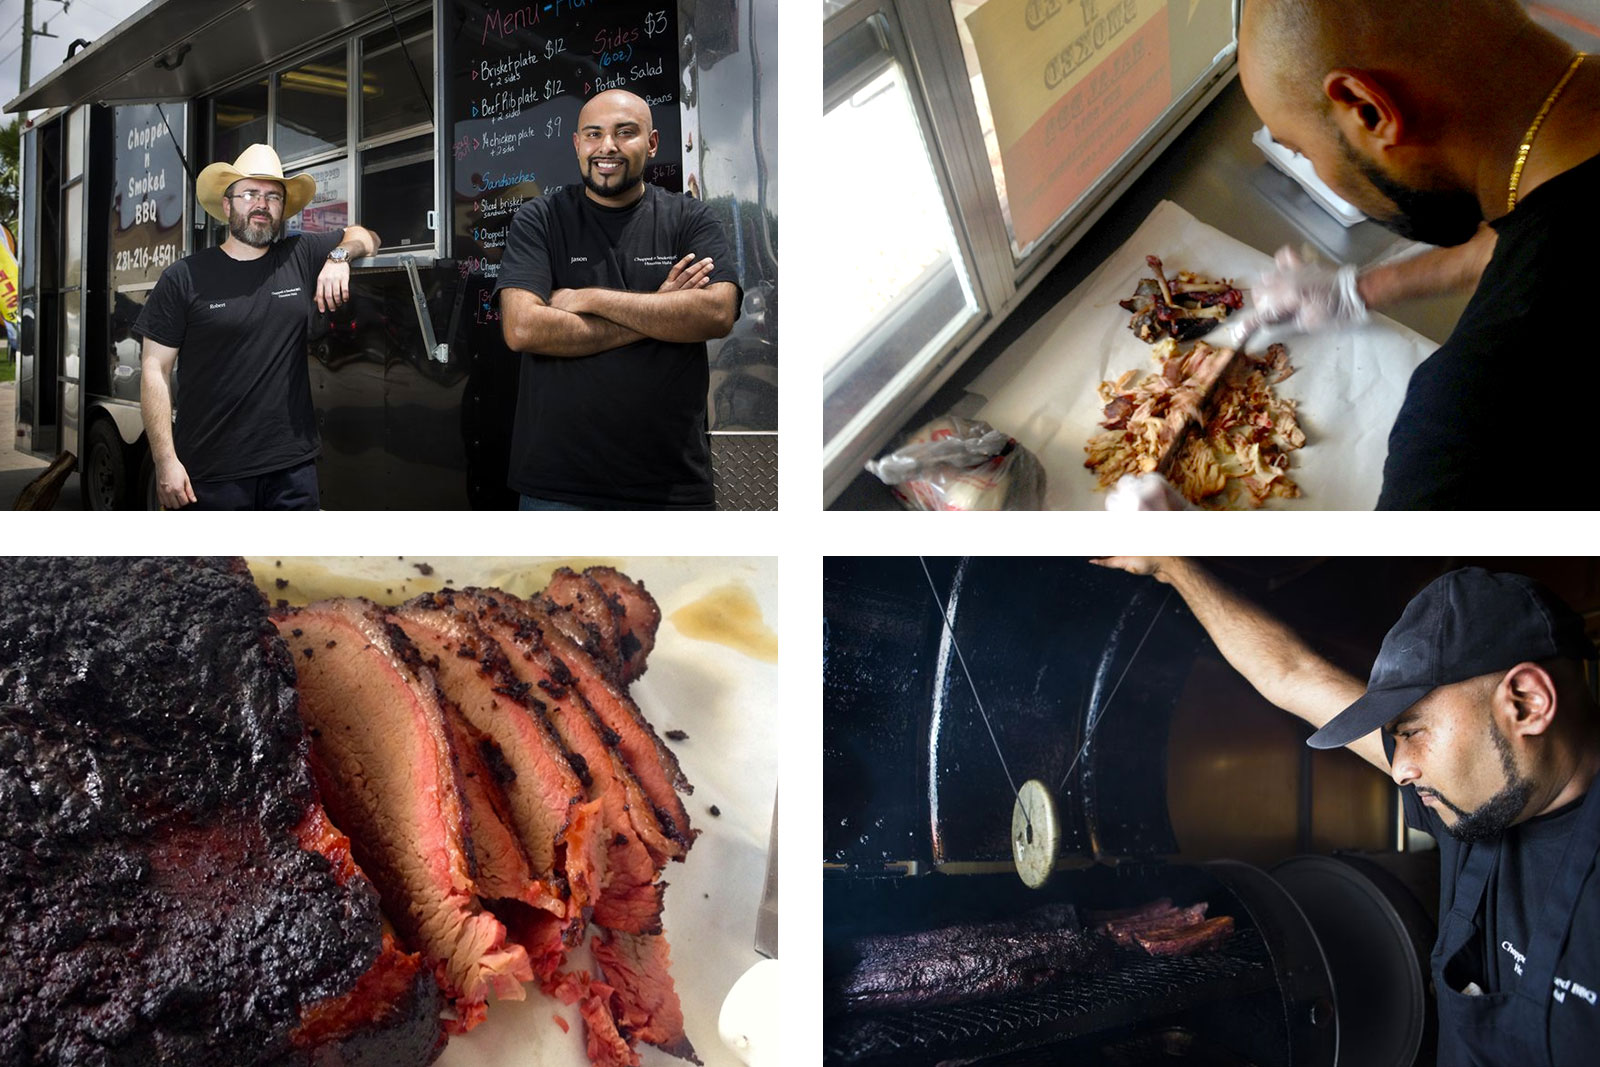 Chopped N Smoked, a fully Halal Texas barbecue food truck in Sugar Land near Houston [Photo: Marie D. De Jesus/Houston Chronicle via AP & Matthew Bell/pri.org]